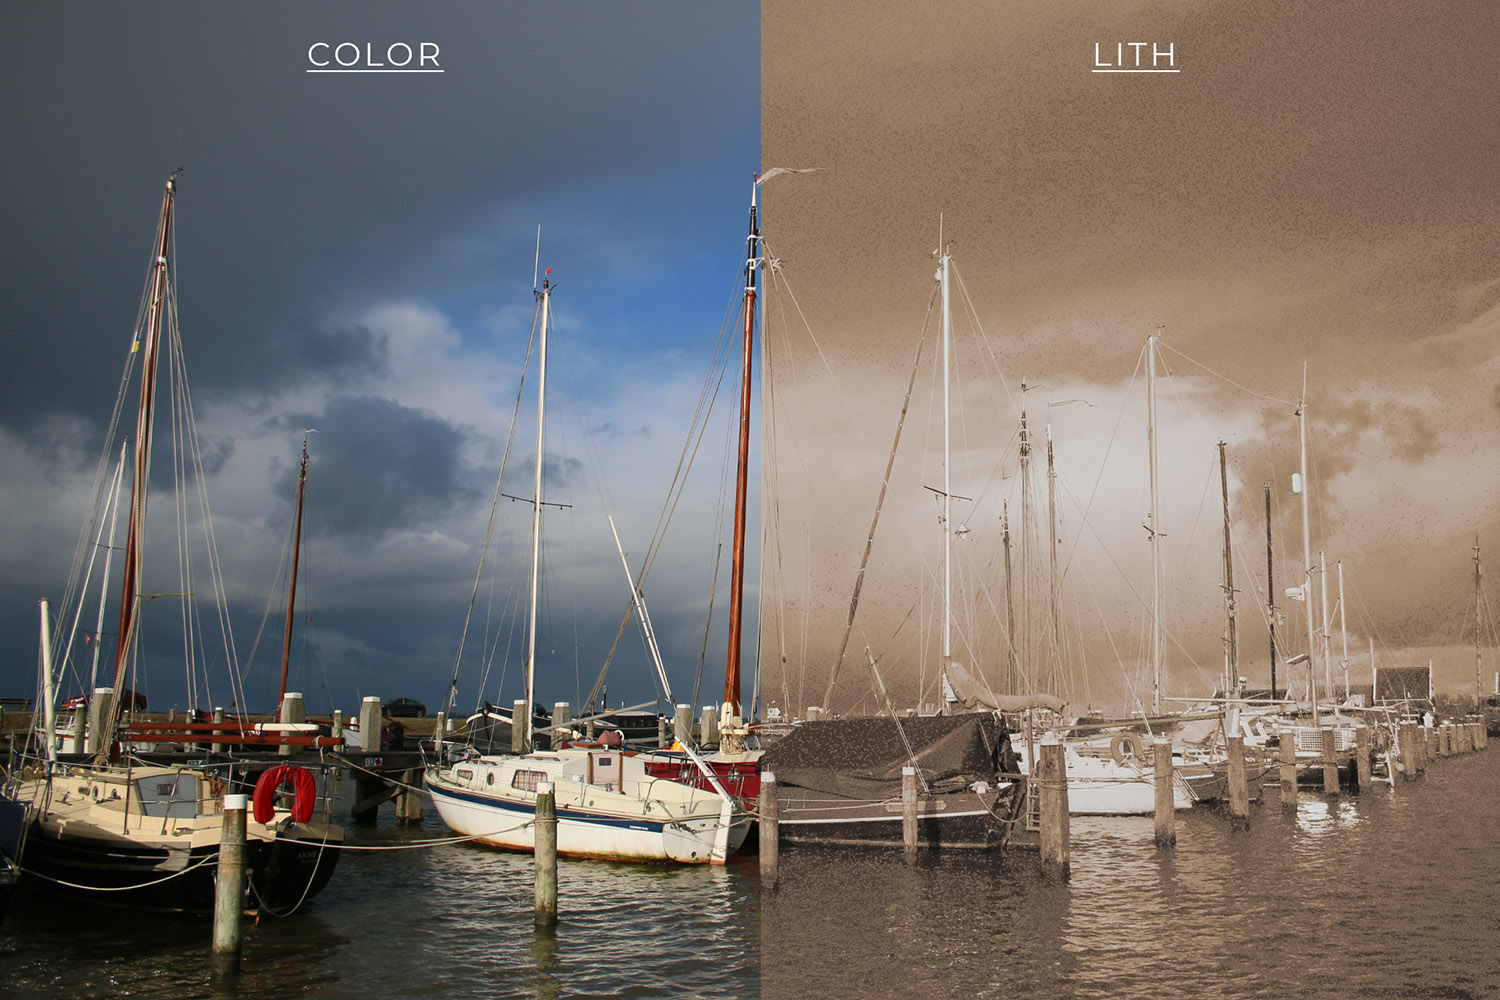 How to Create a Lithography Effect Using Photoshop